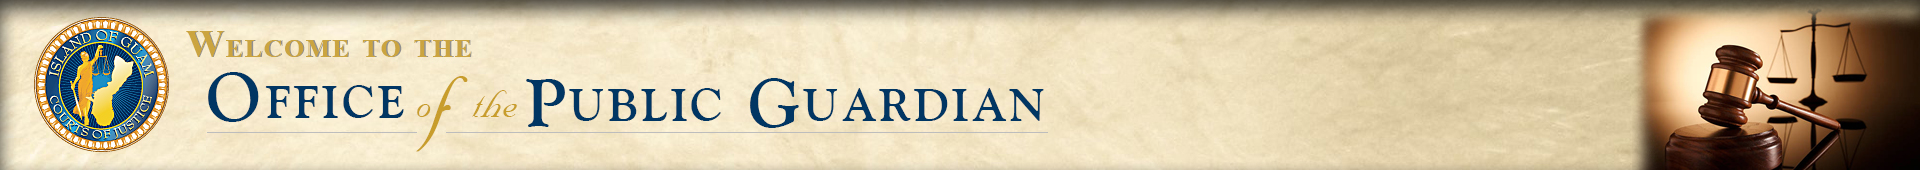 Office of the Public Guardian Header